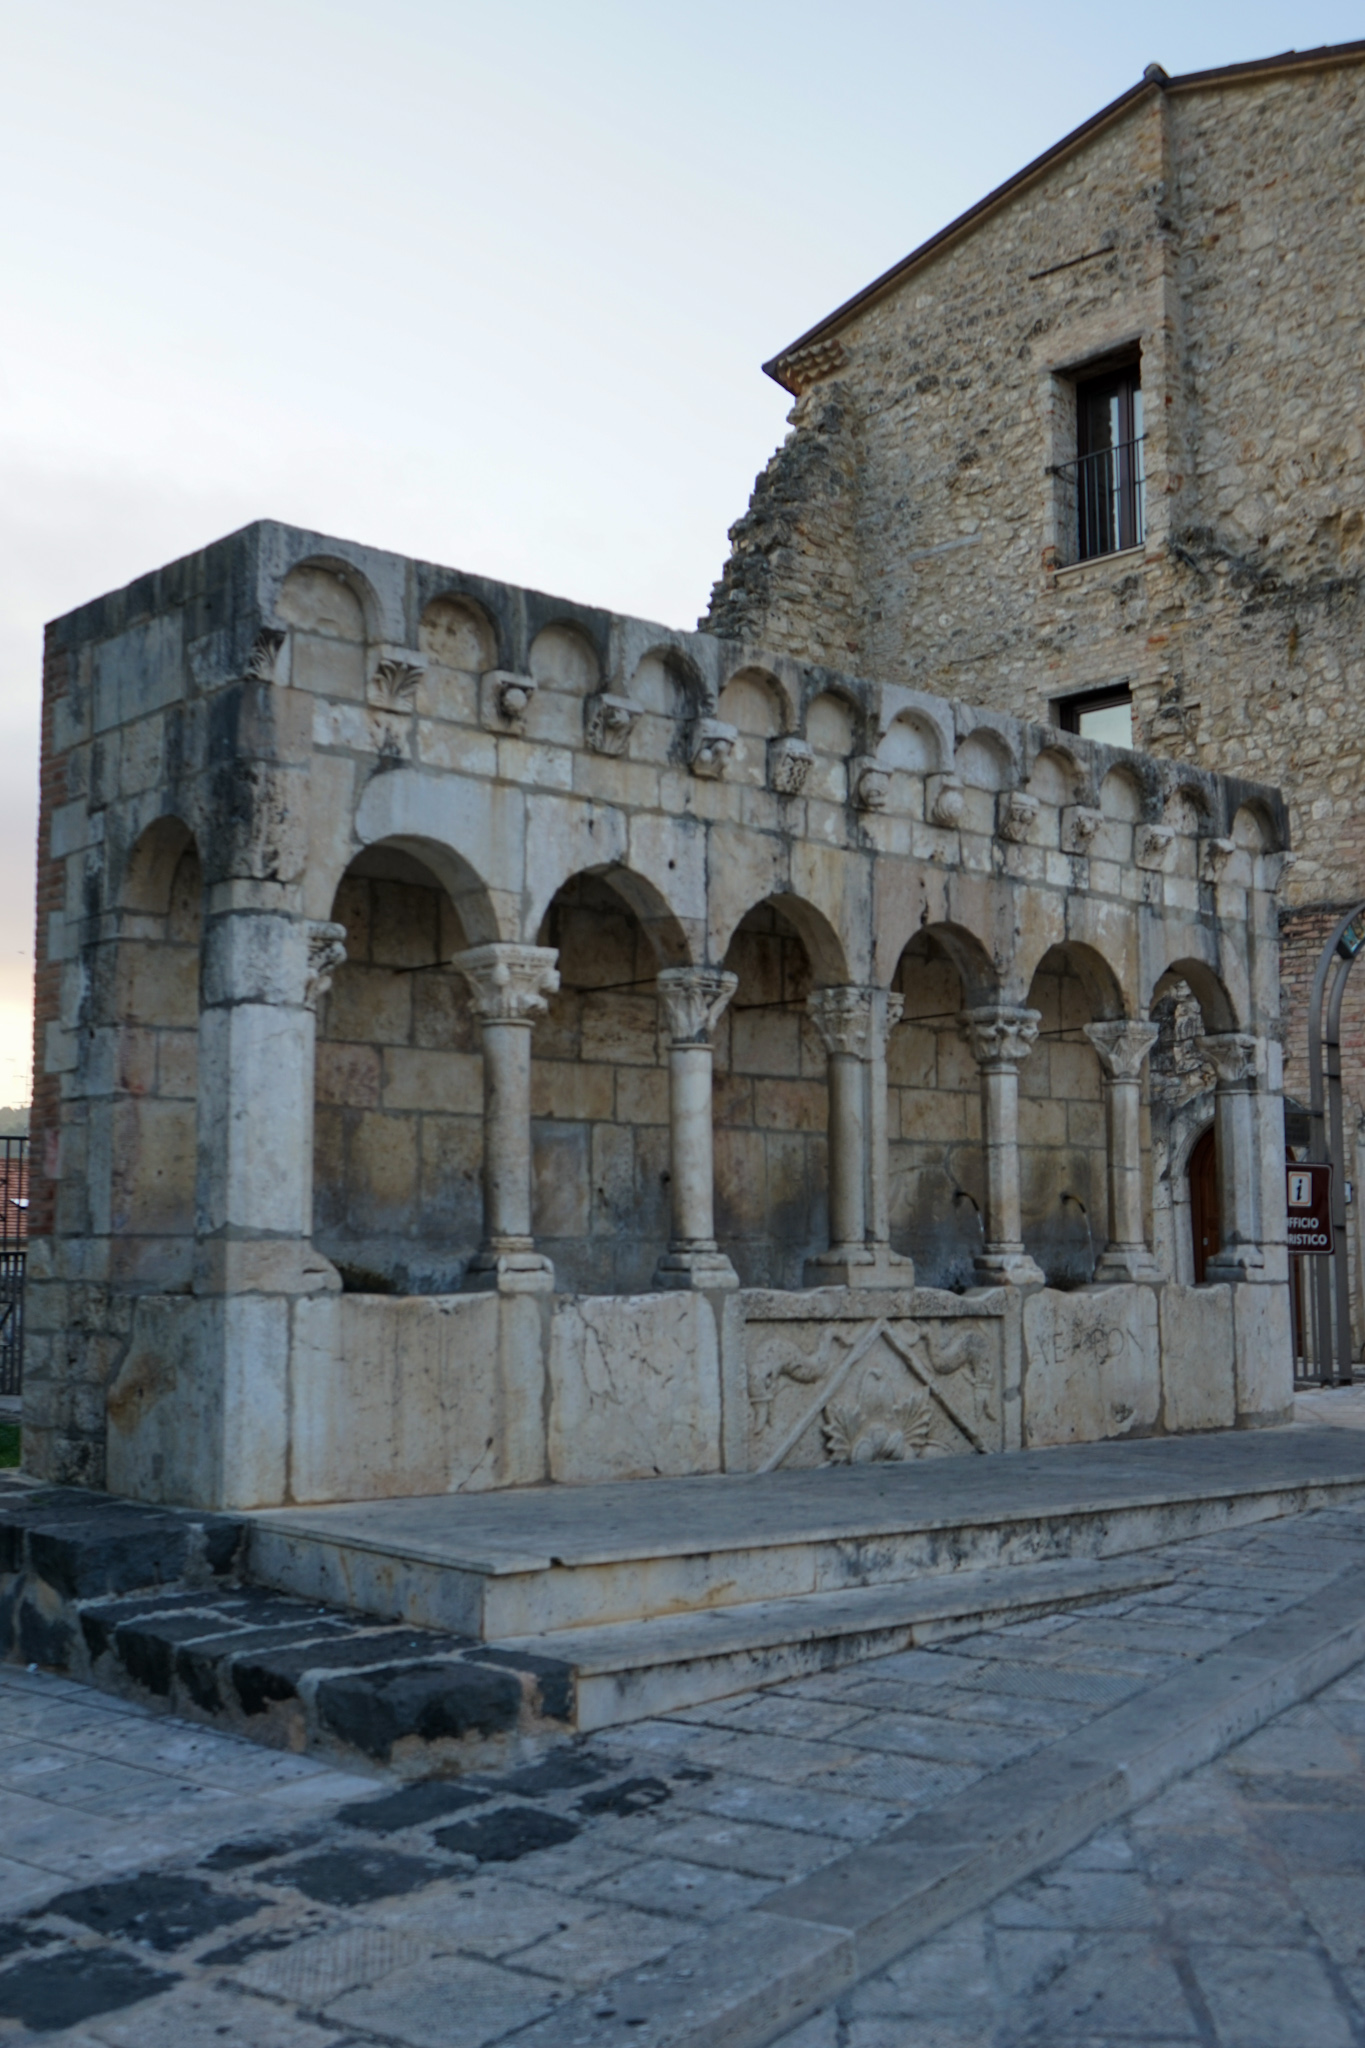 The fraternal fountain of Isernia, in the region of Molise